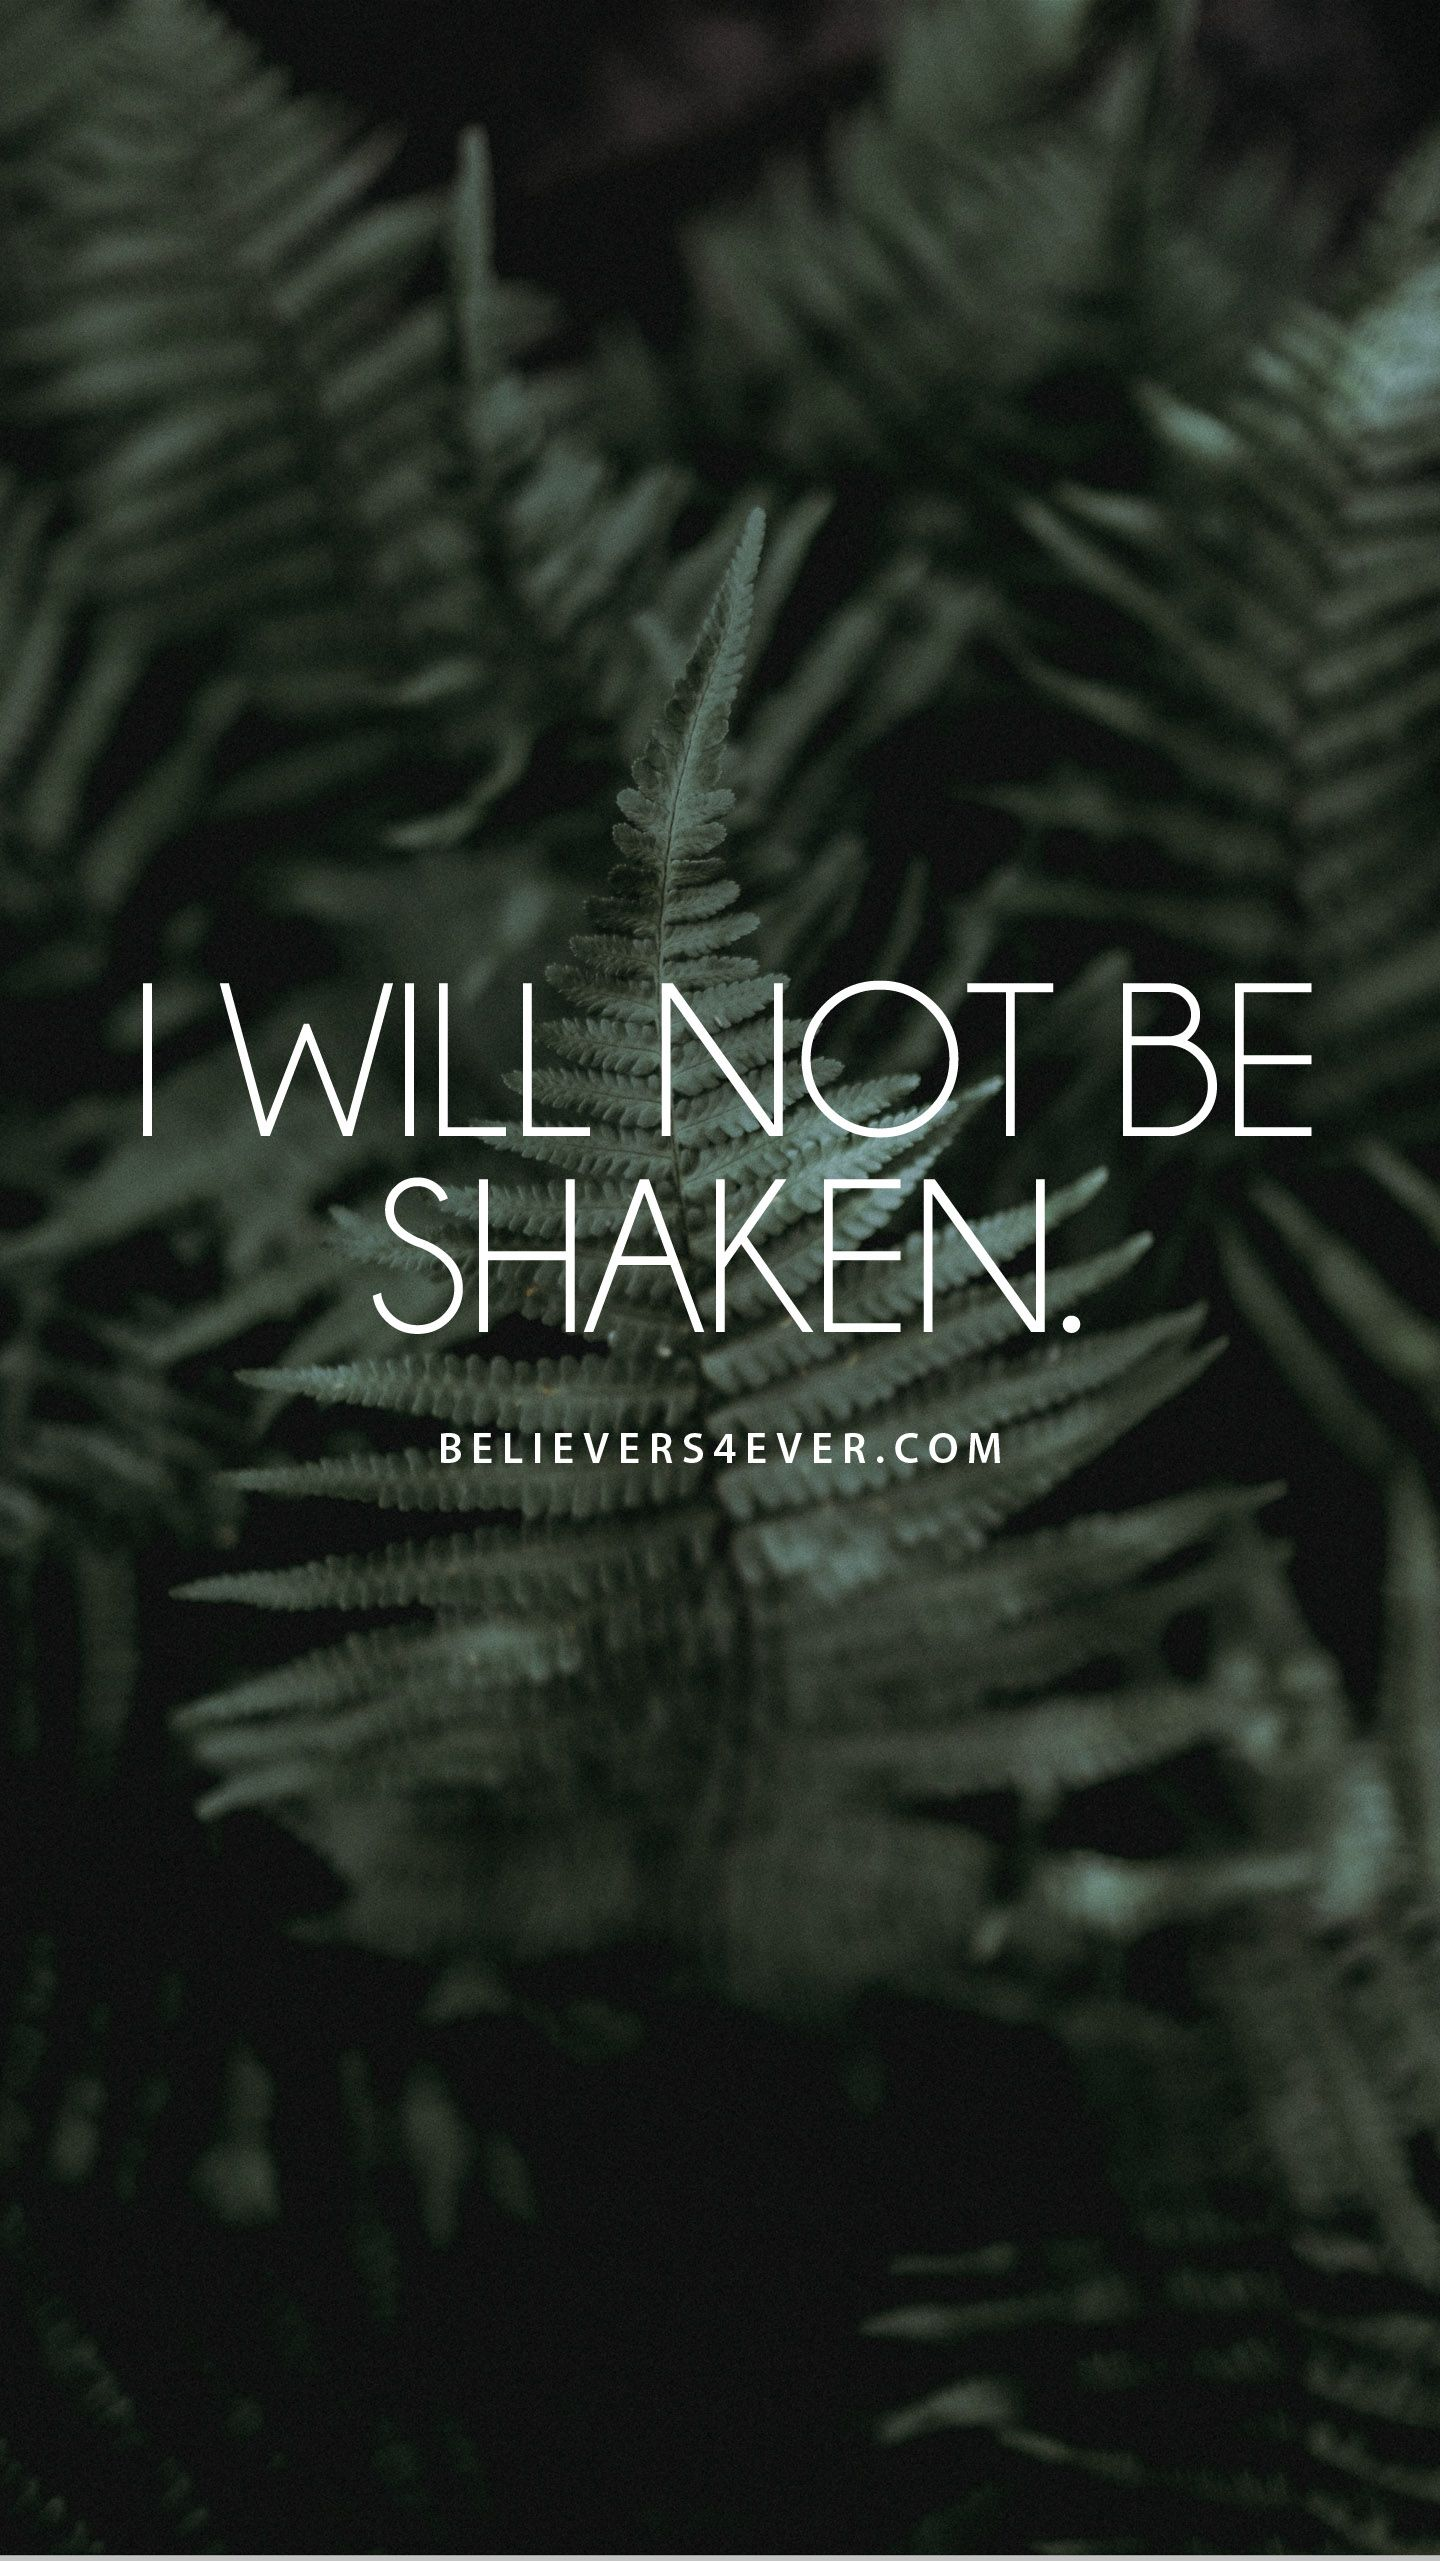 I will not be shaken Phone wallpaper bible, Christian